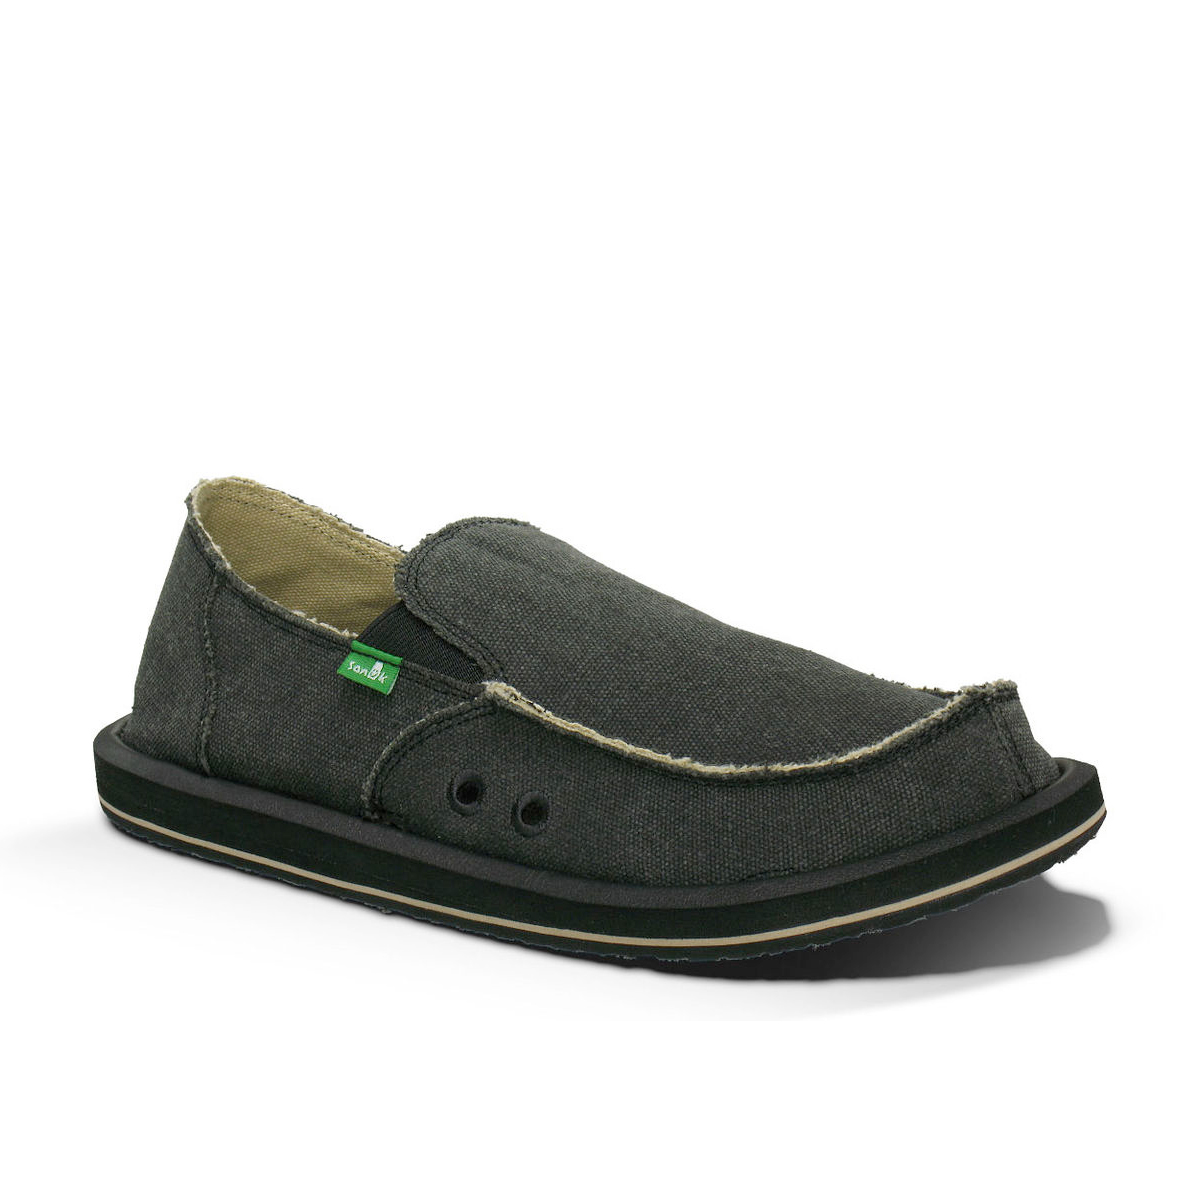 Sanuk-Vagabond-Sandals-Sidewalk-Surfers-New-in-Various-Colours-and-Sizes